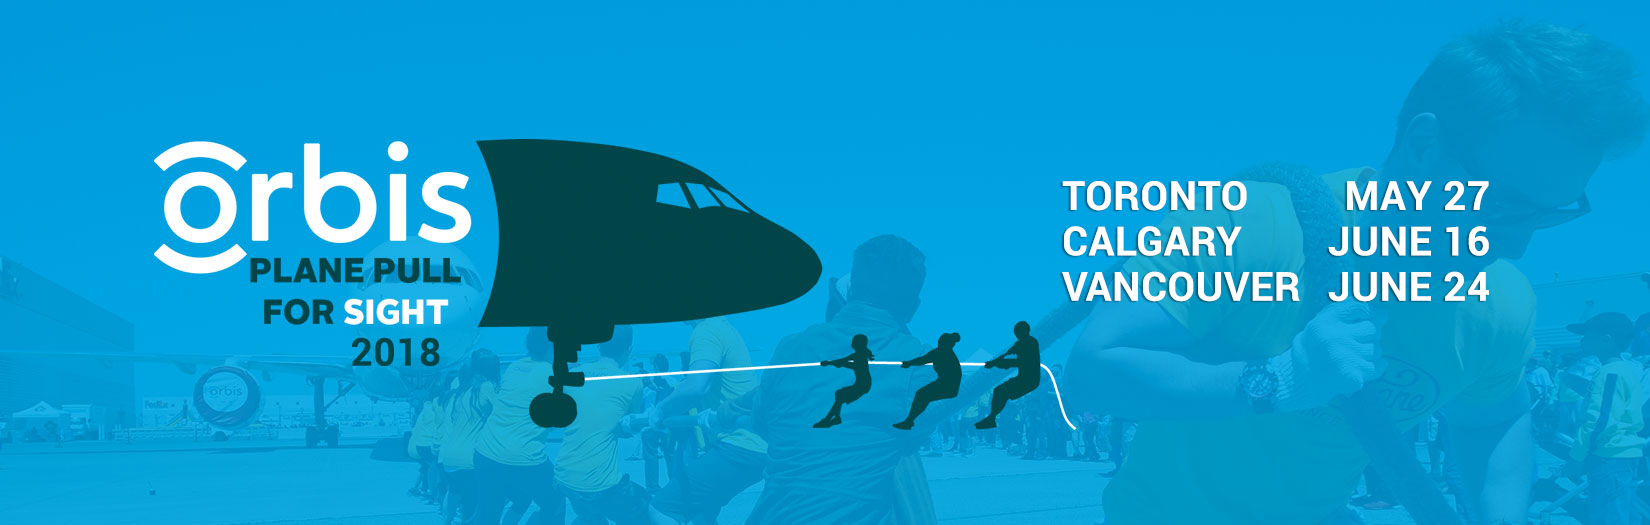 Plane Pull For Sight - 2018: Toronto, Calgary, Vancouver